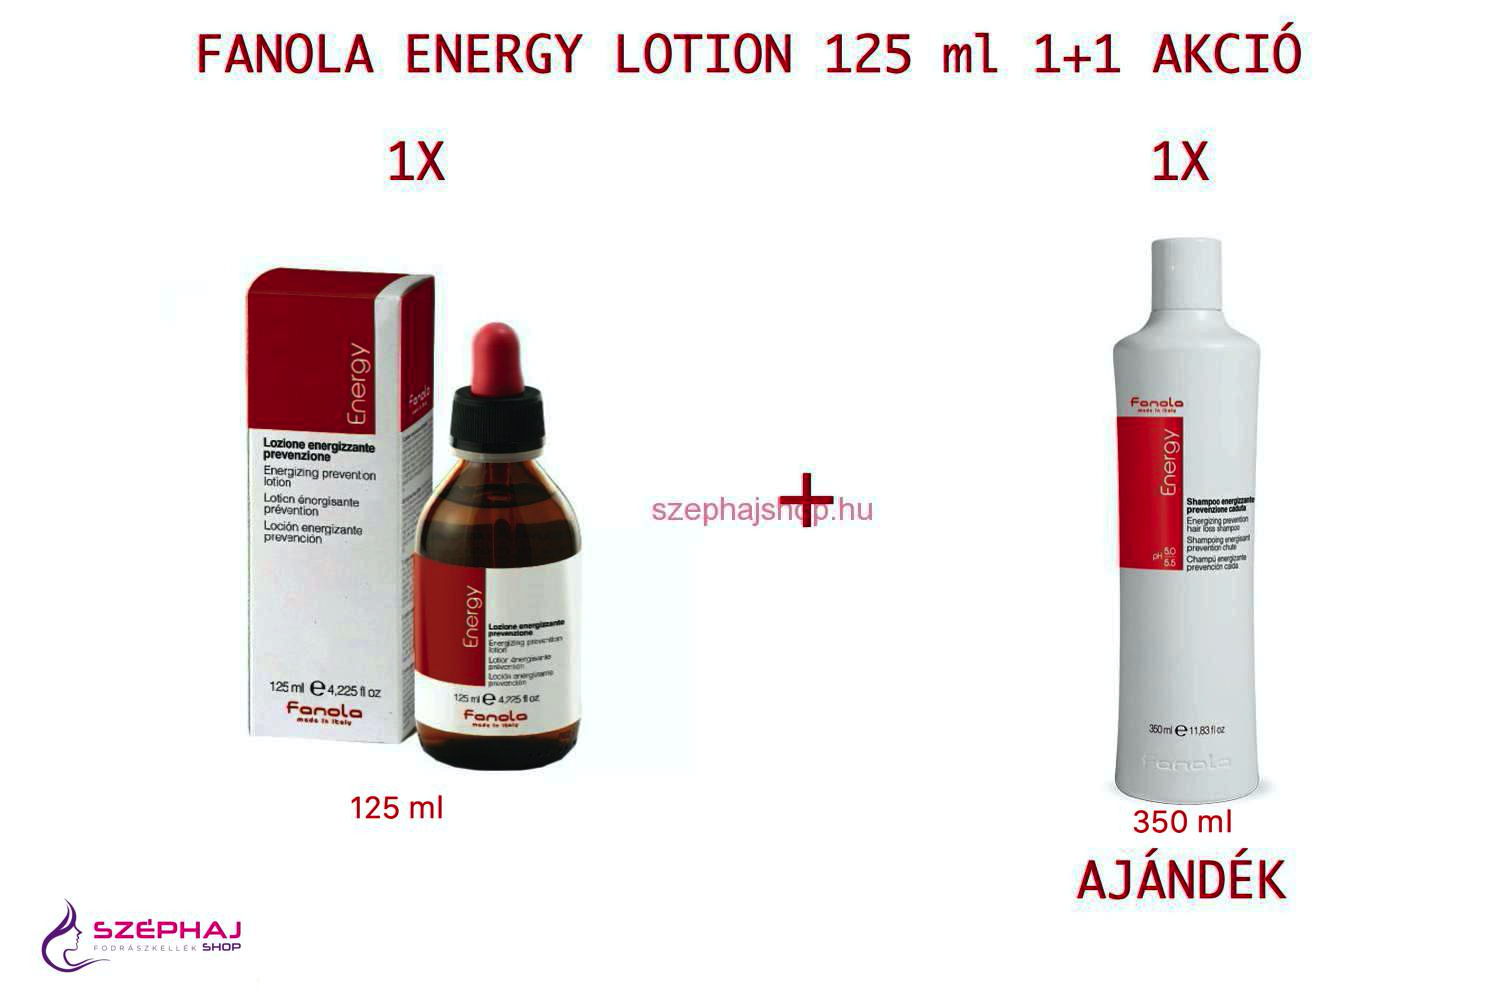 FANOLA Energy Lotion 125 ml 1+1 AKCIÓ